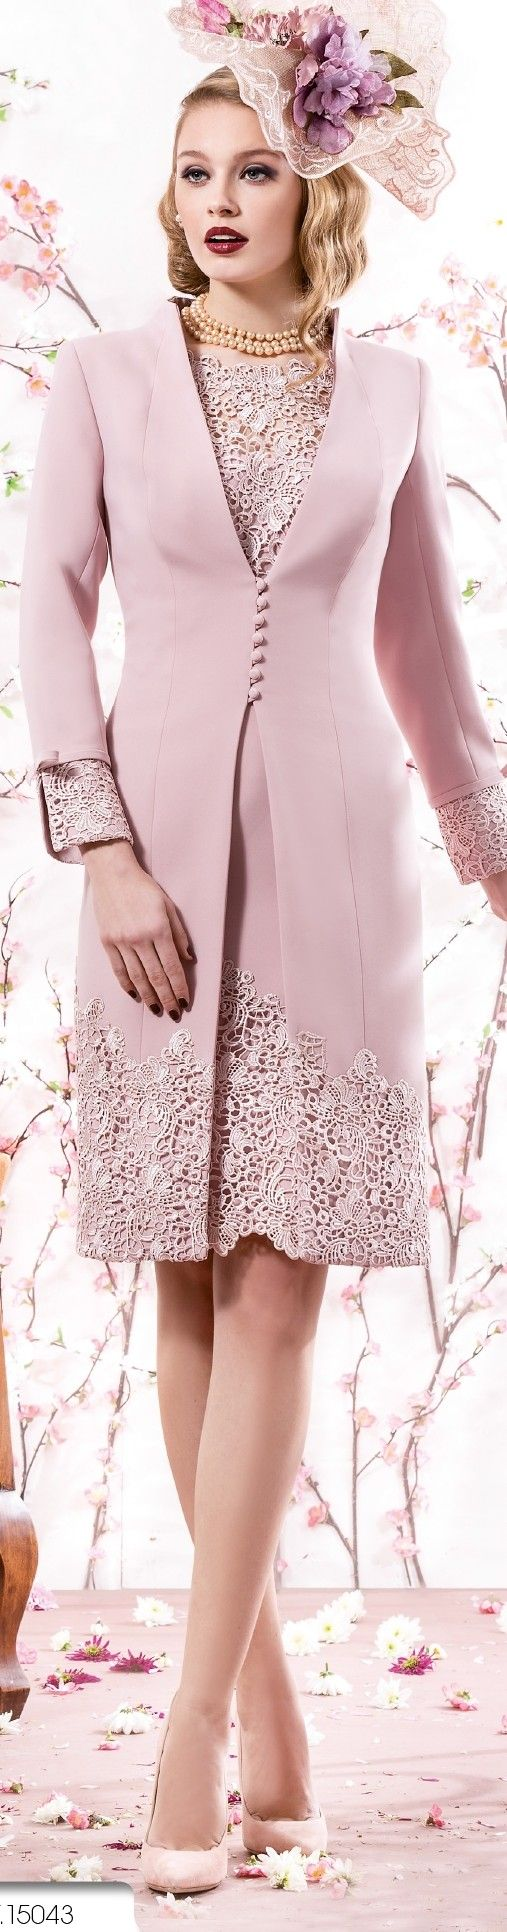 This dusty pink mother of the bride dress has long sleeves. Our US dress design firm can replicate this look for you in any color and with any changes you need.  We specialize in affordable custom mother of the bride suit #dresses with sleeves.  We can sket a design or work from any picture.  See other mother of the bride dresses for inspiration at http://www.dariuscordell.com/product-category/mother-of-the-bride-dresses/